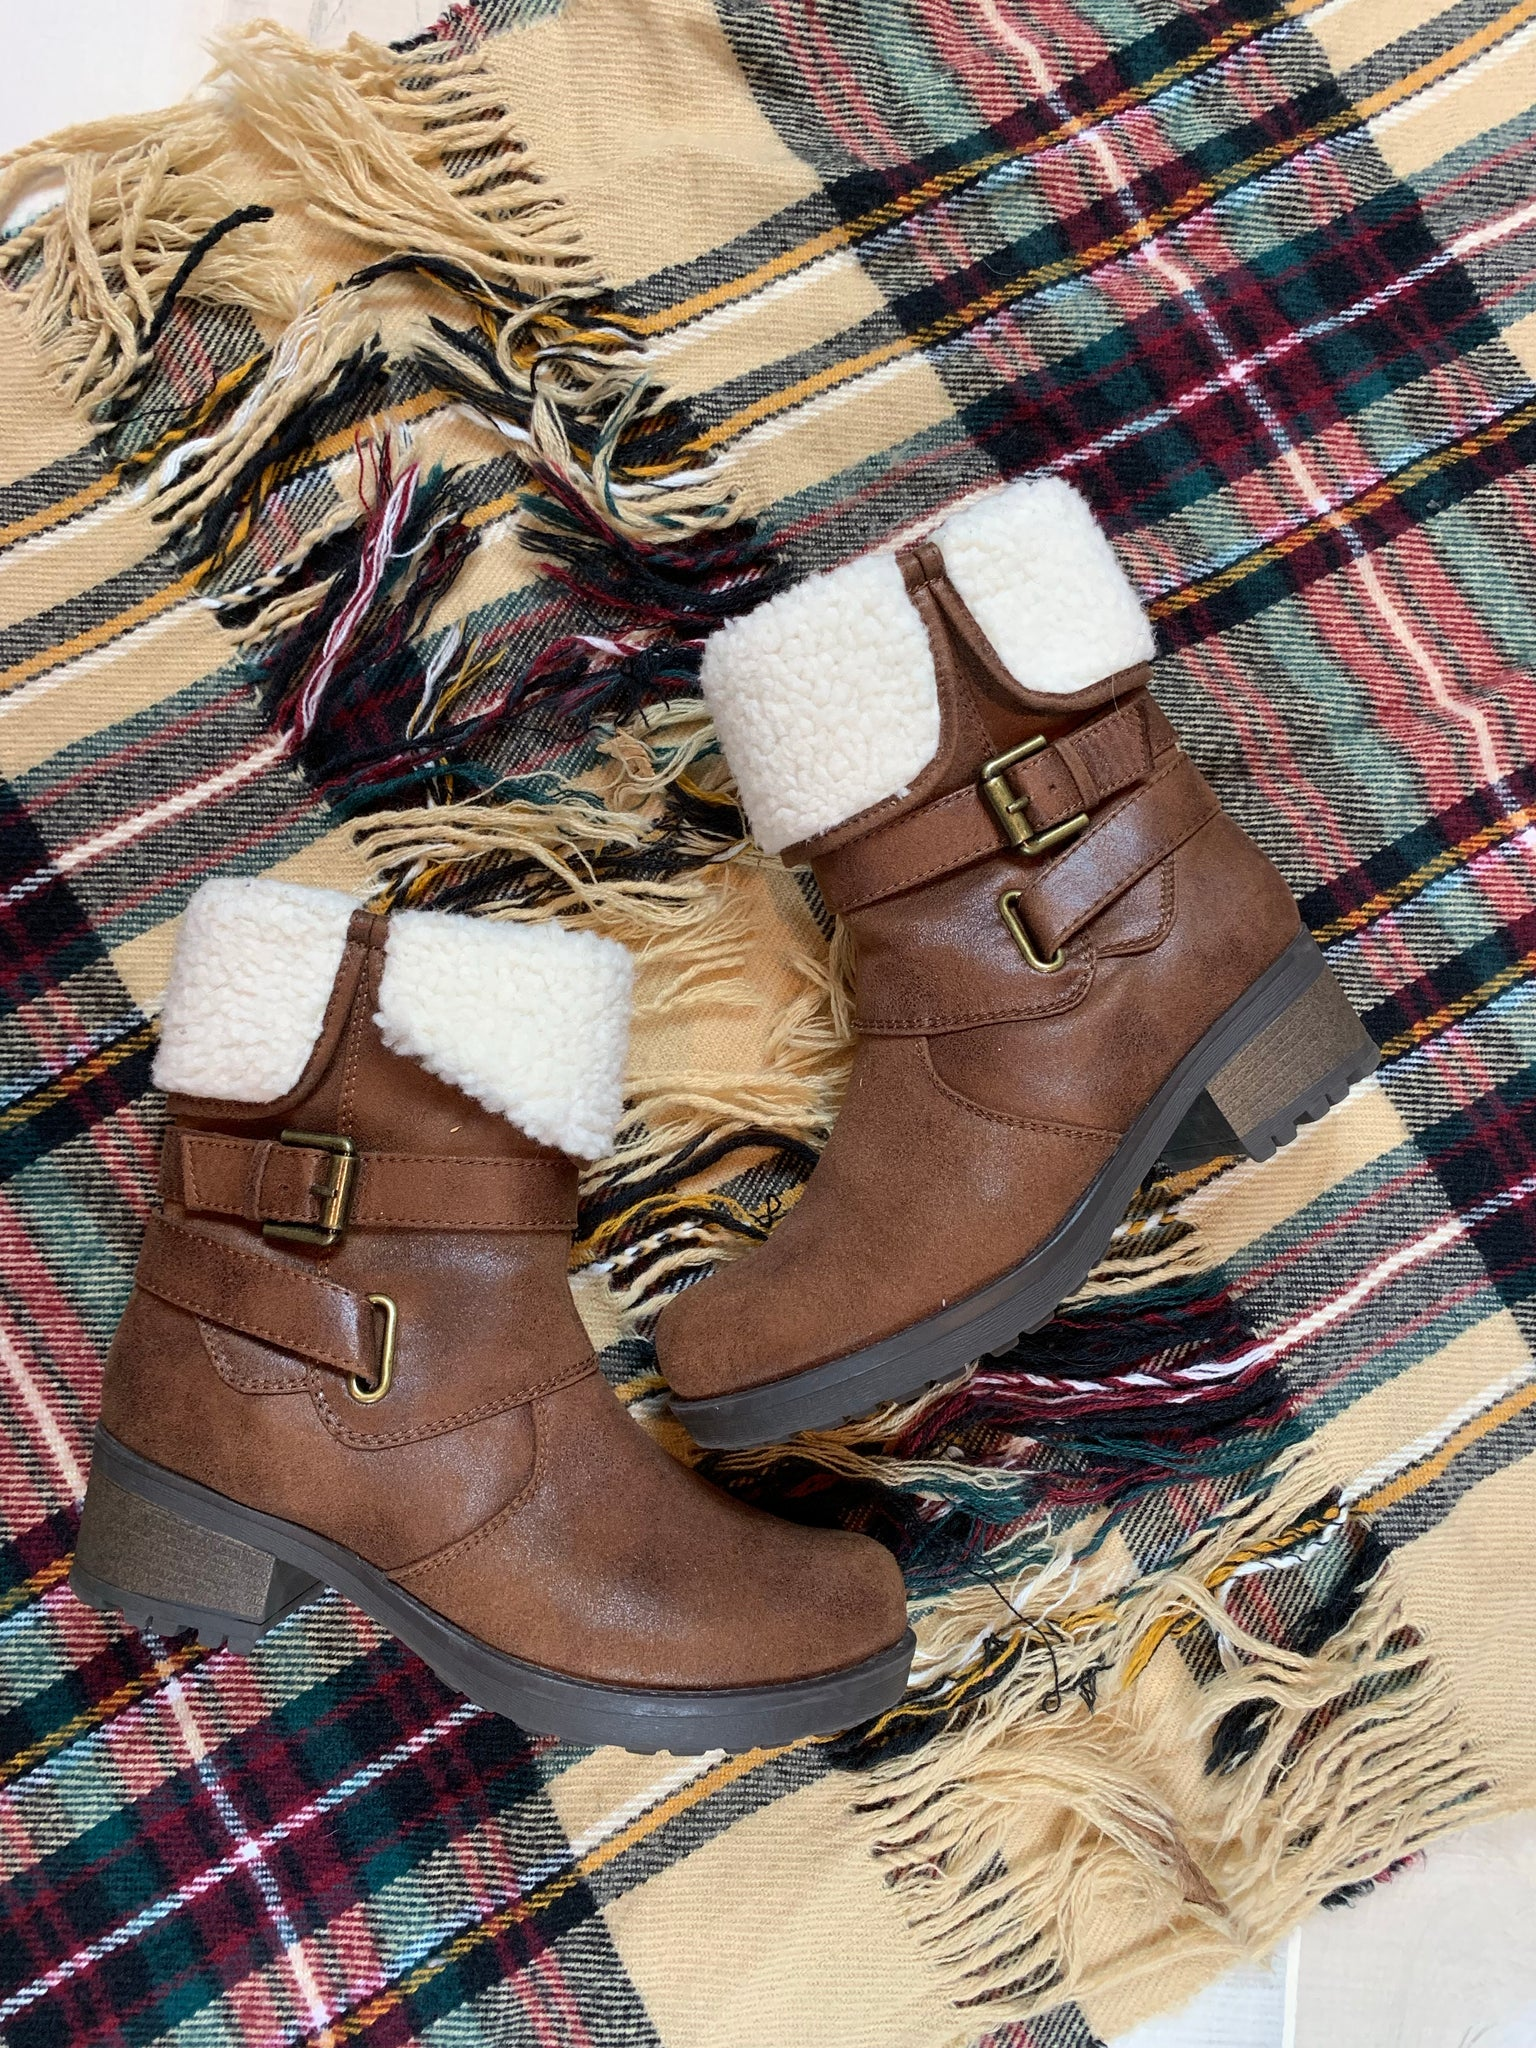 White Mountain Fur Ankle Boots: Size 6.5